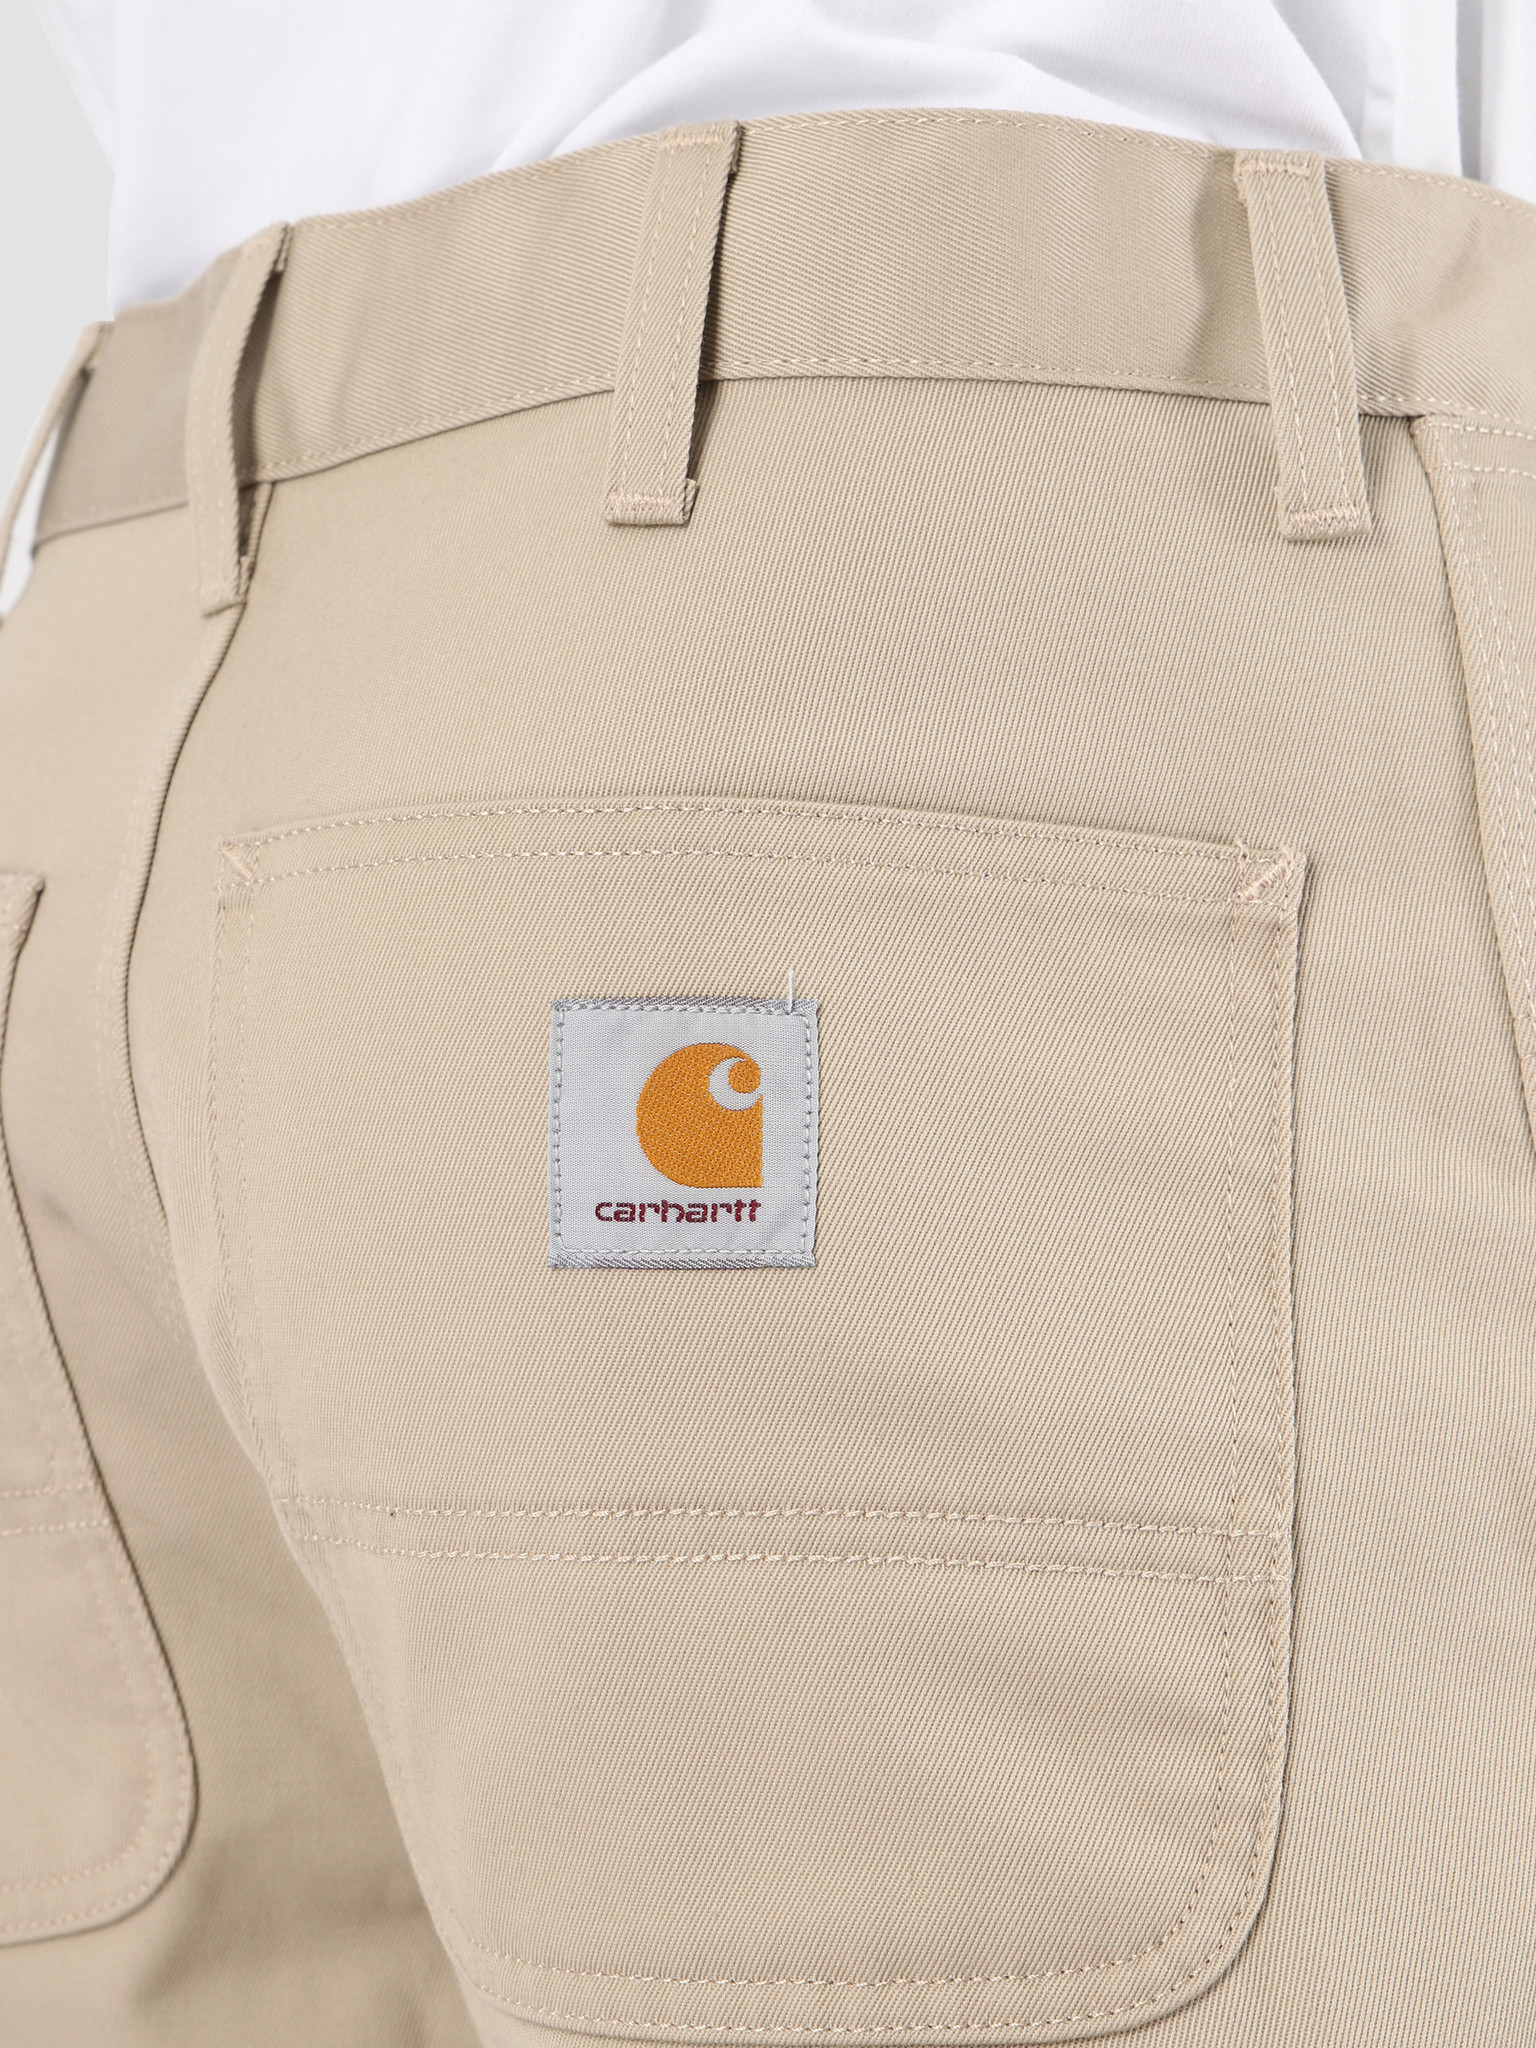 Carhartt WIP Carhartt WIP Simple Pant Rinsed Wall I020075